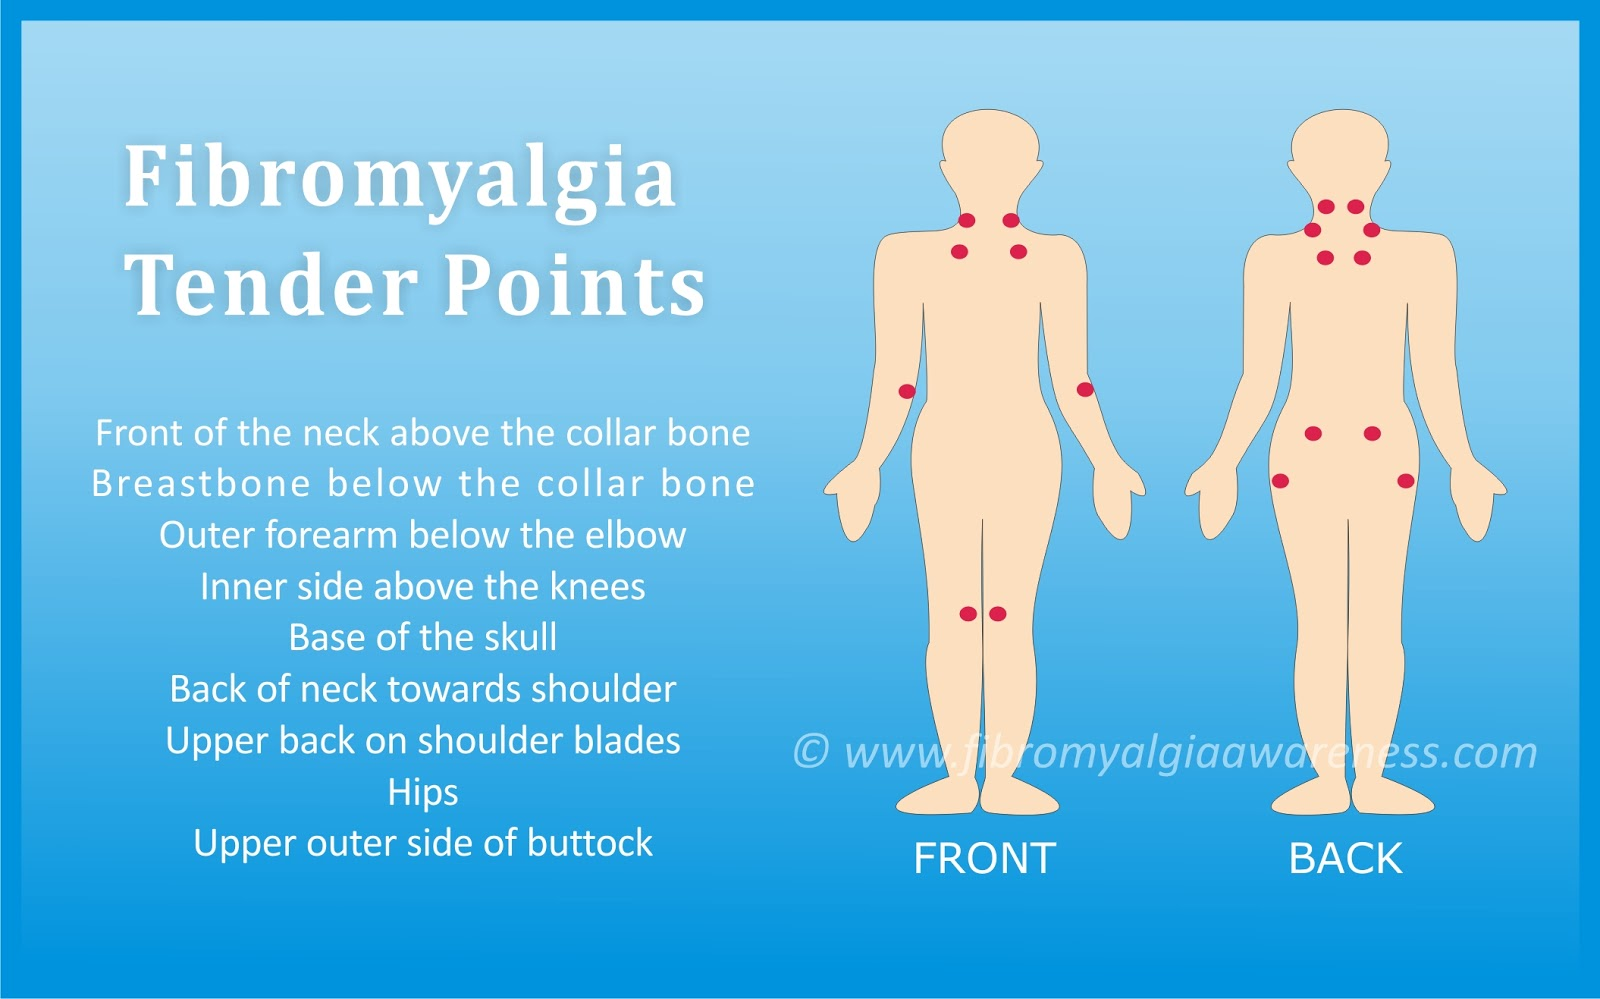 18 tender points of fibromyalgia diagram digital power meter wiring awareness information tips support patient stories poster